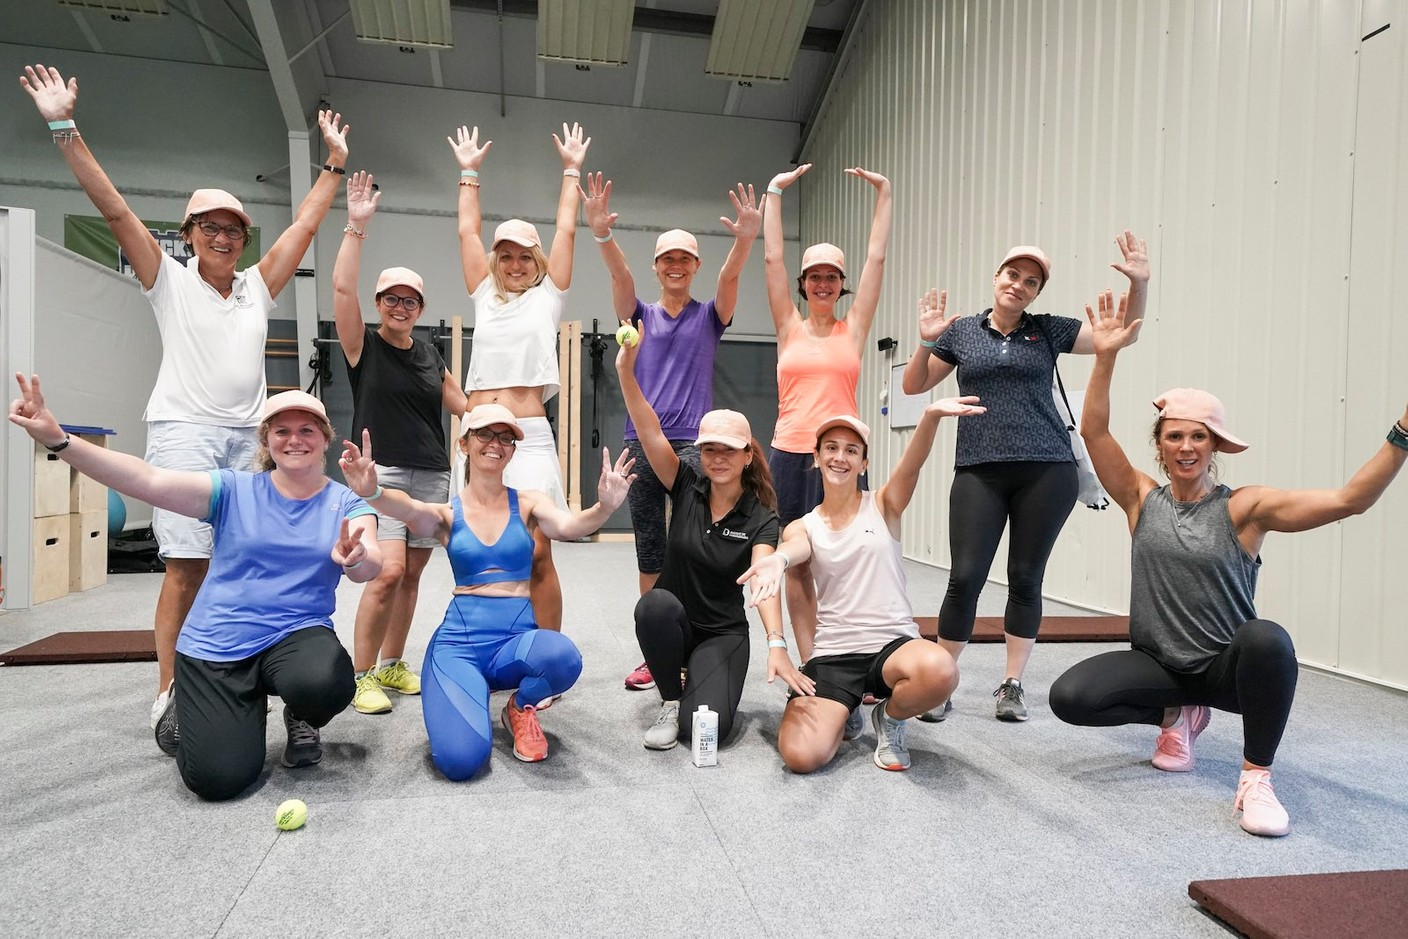 Participants in the cardio warm-up session that started the first edition of the WIB Tennis Challenge, 9 September 2021. Photo credit: WIB/A. Dehez